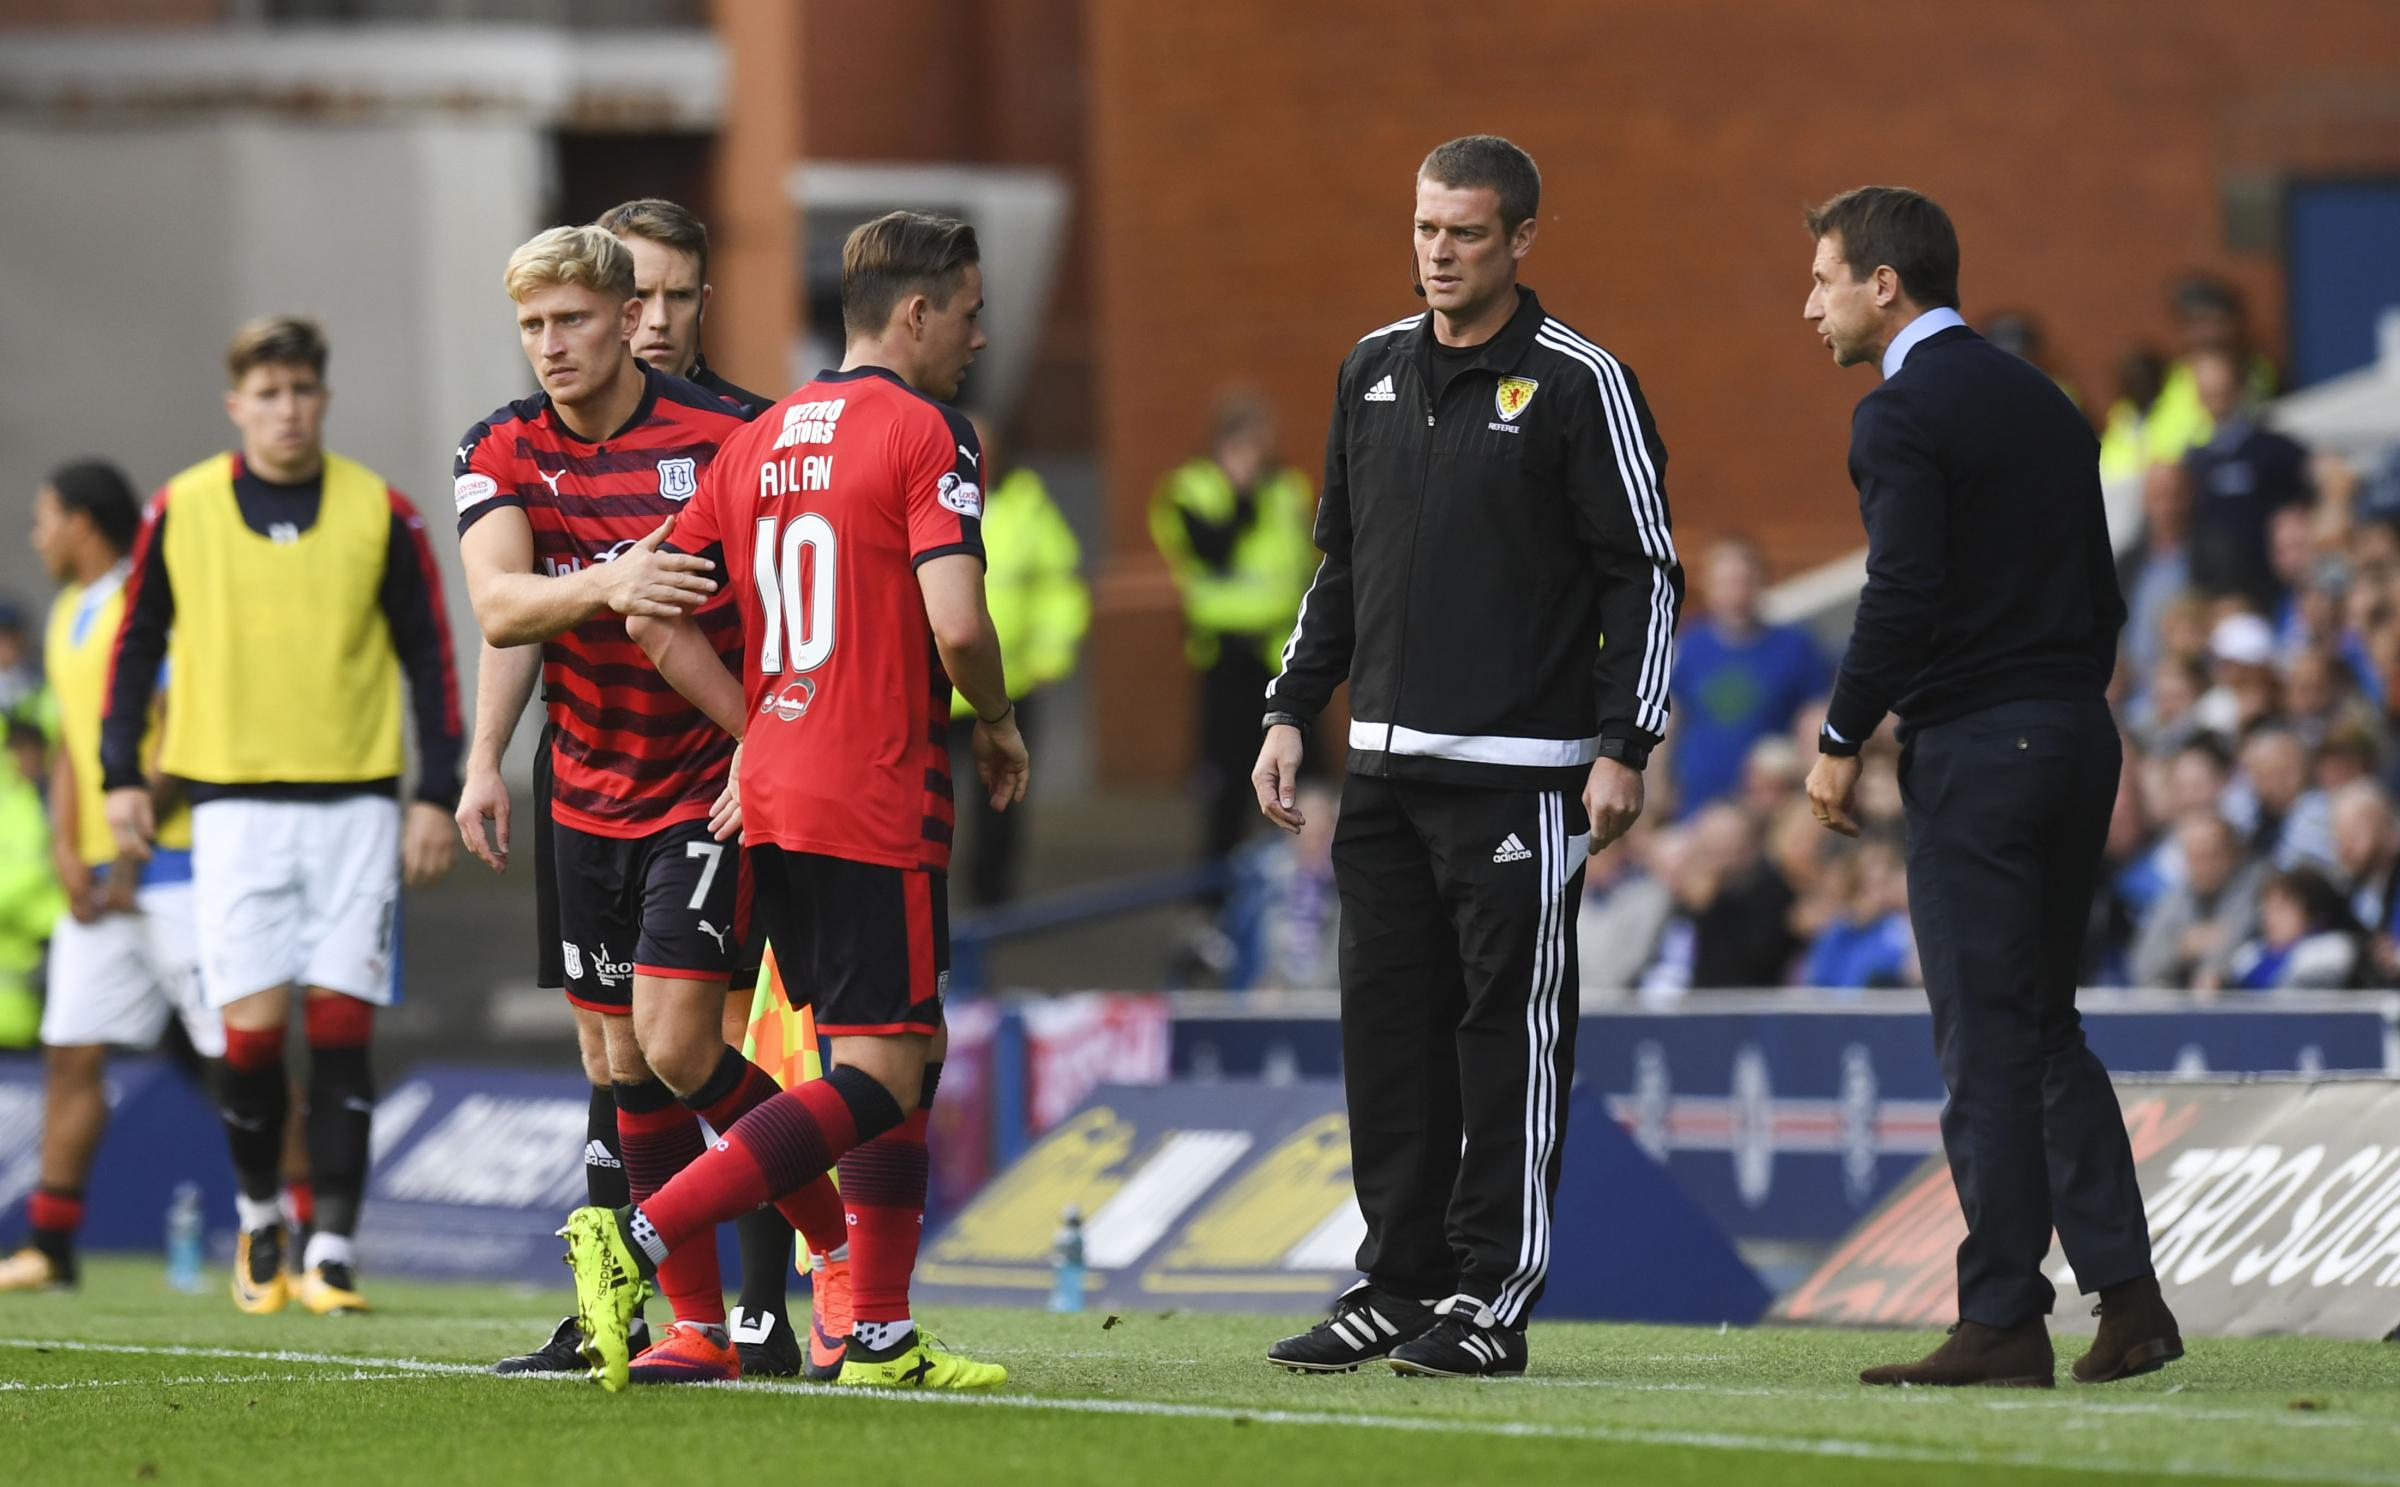 Dundee manager Neil McCann (right) with Scott Allan as he is substituted